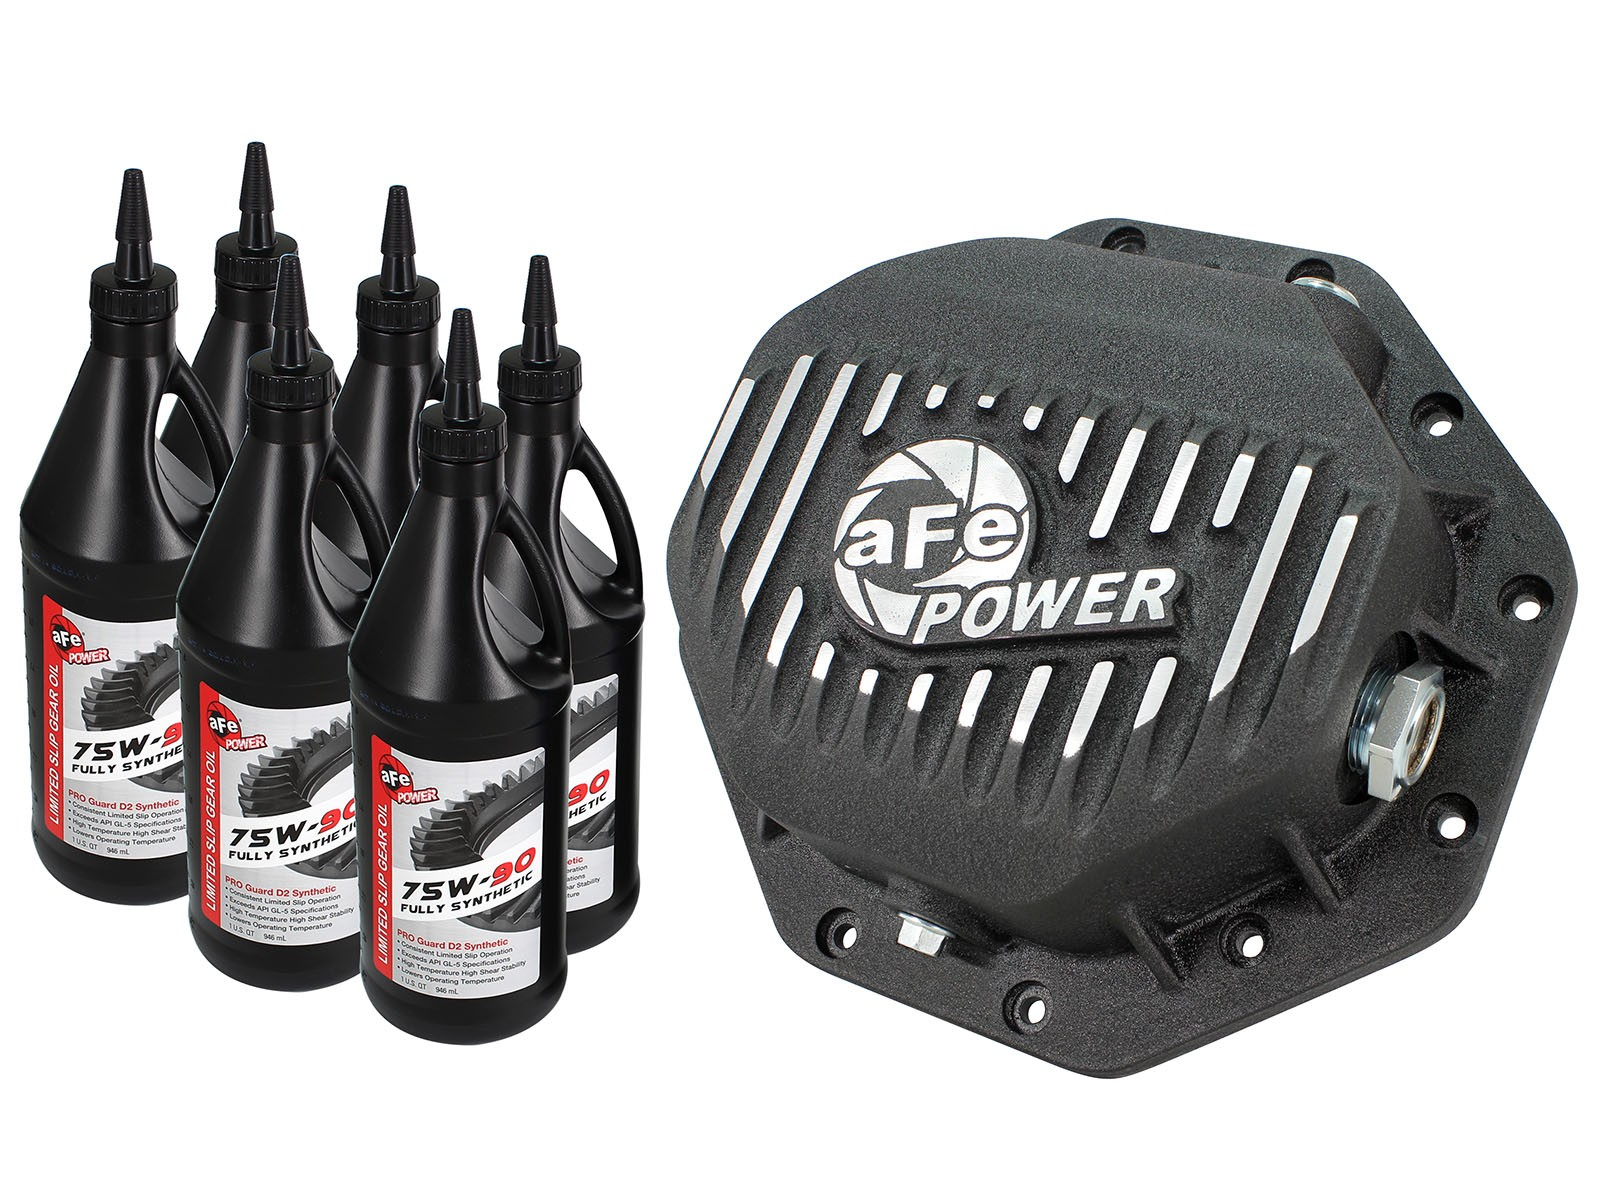 aFe POWER 46-70272-WL Rear Differential Cover, Machined Fins; Pro Series w/ Gear Oil